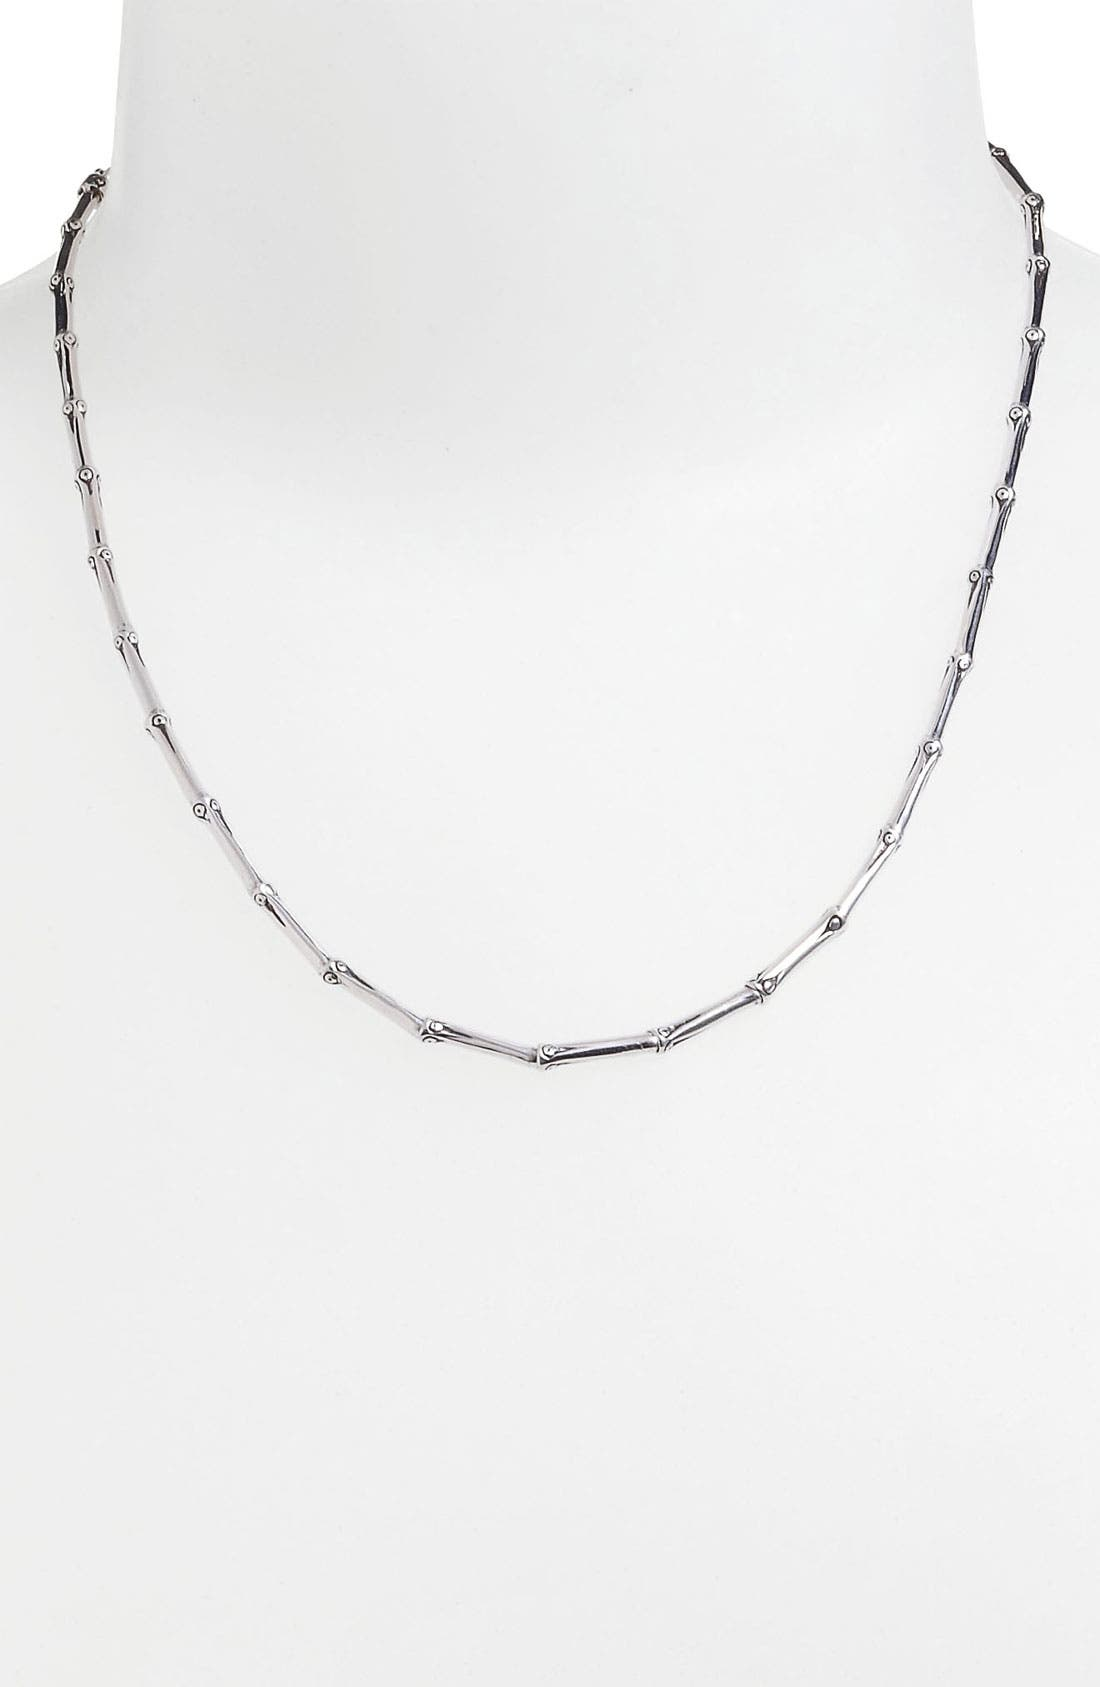 Main Image - John Hardy 'Bamboo' Single Row Necklace